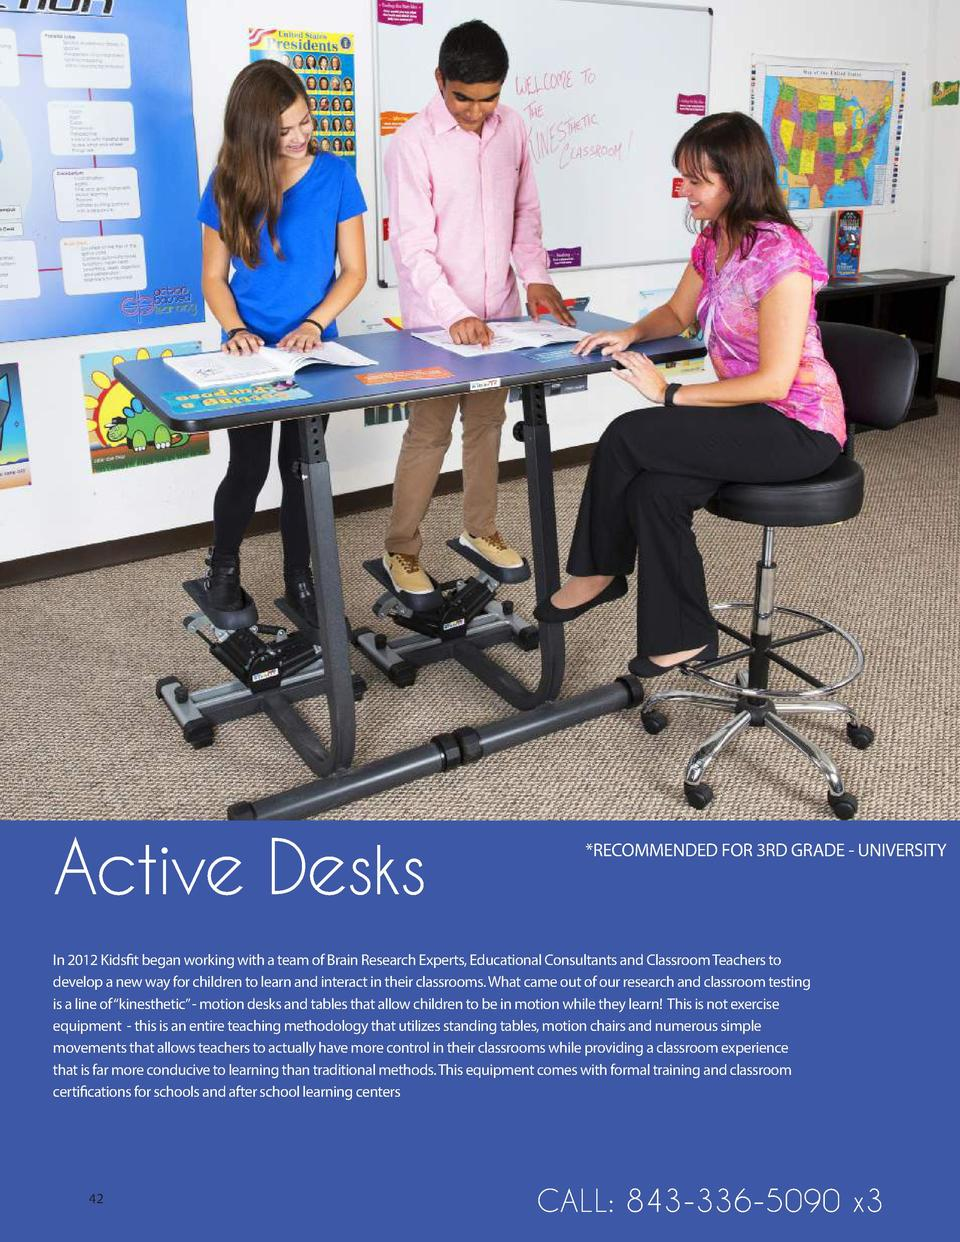 Active Desks   RECOMMENDED FOR 3RD GRADE - UNIVERSITY  In 2012 Kidsfit began working with a team of Brain Research Experts...